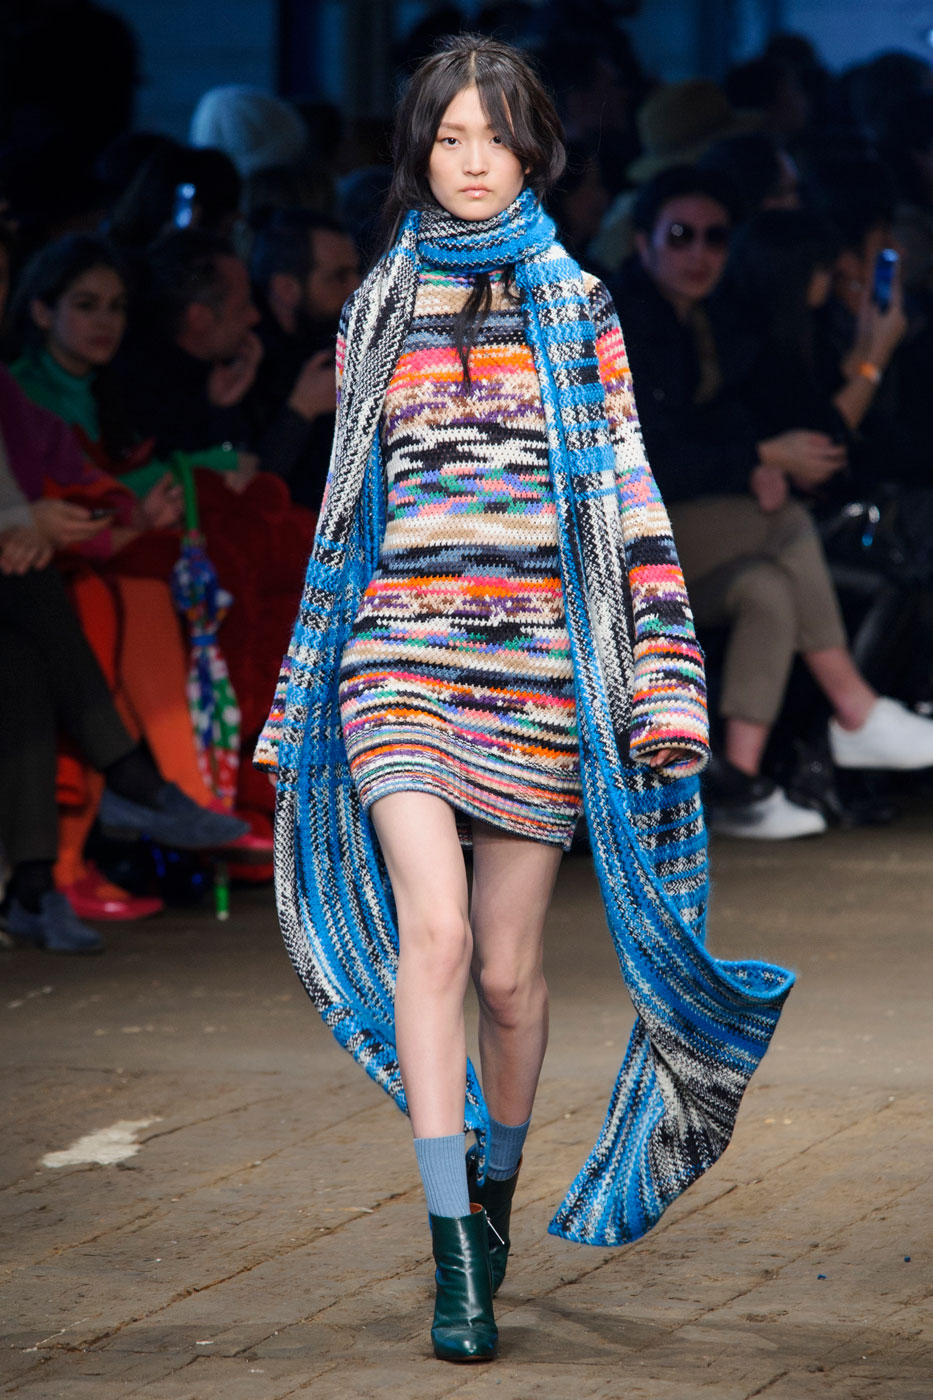 Missoni's Inventive Knitwear Makes for a Festive Fall 2016 Collection